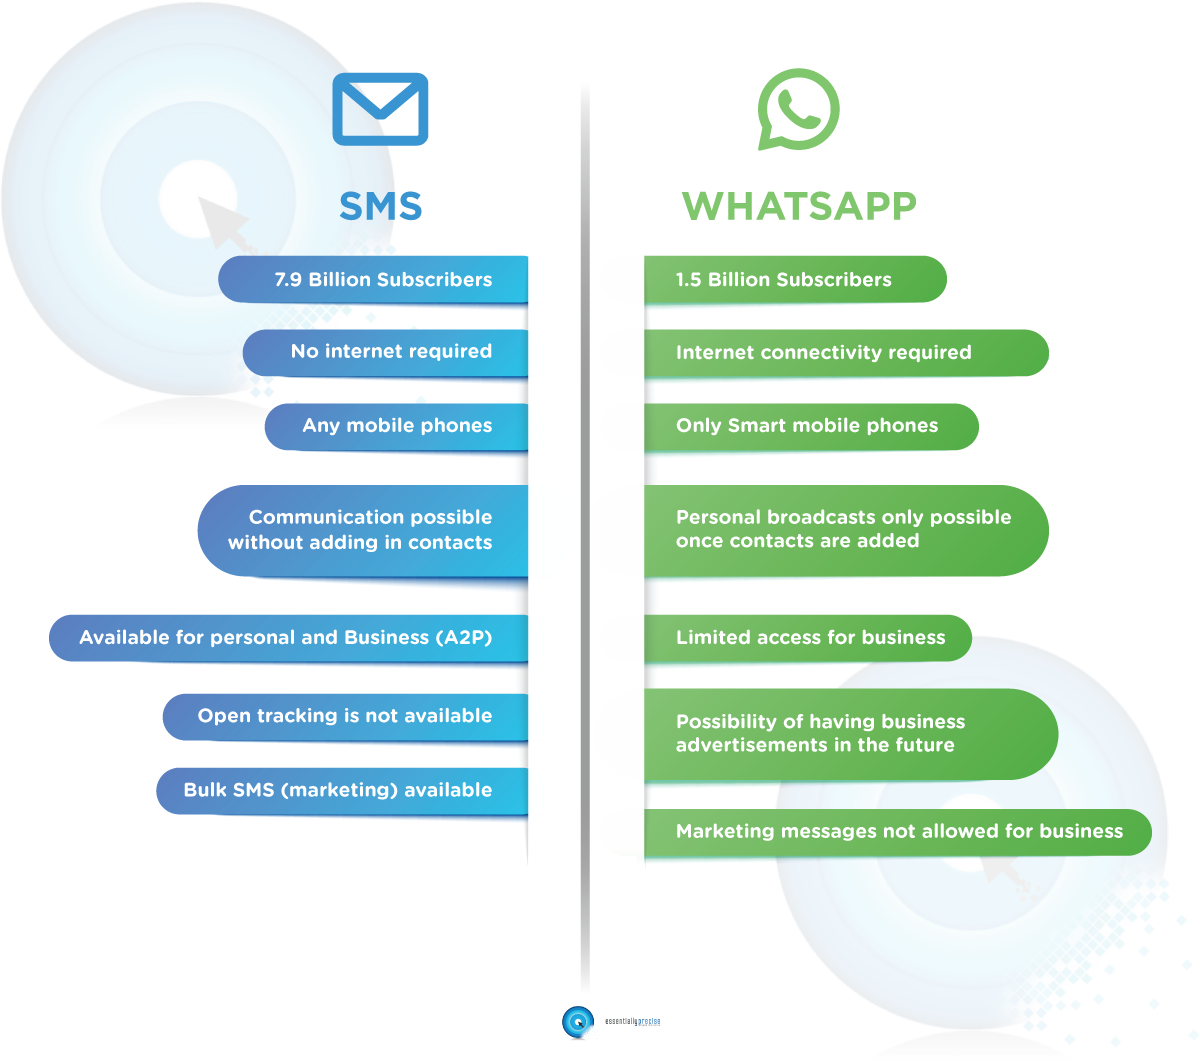 WhatsApp Vs SMS Comparison